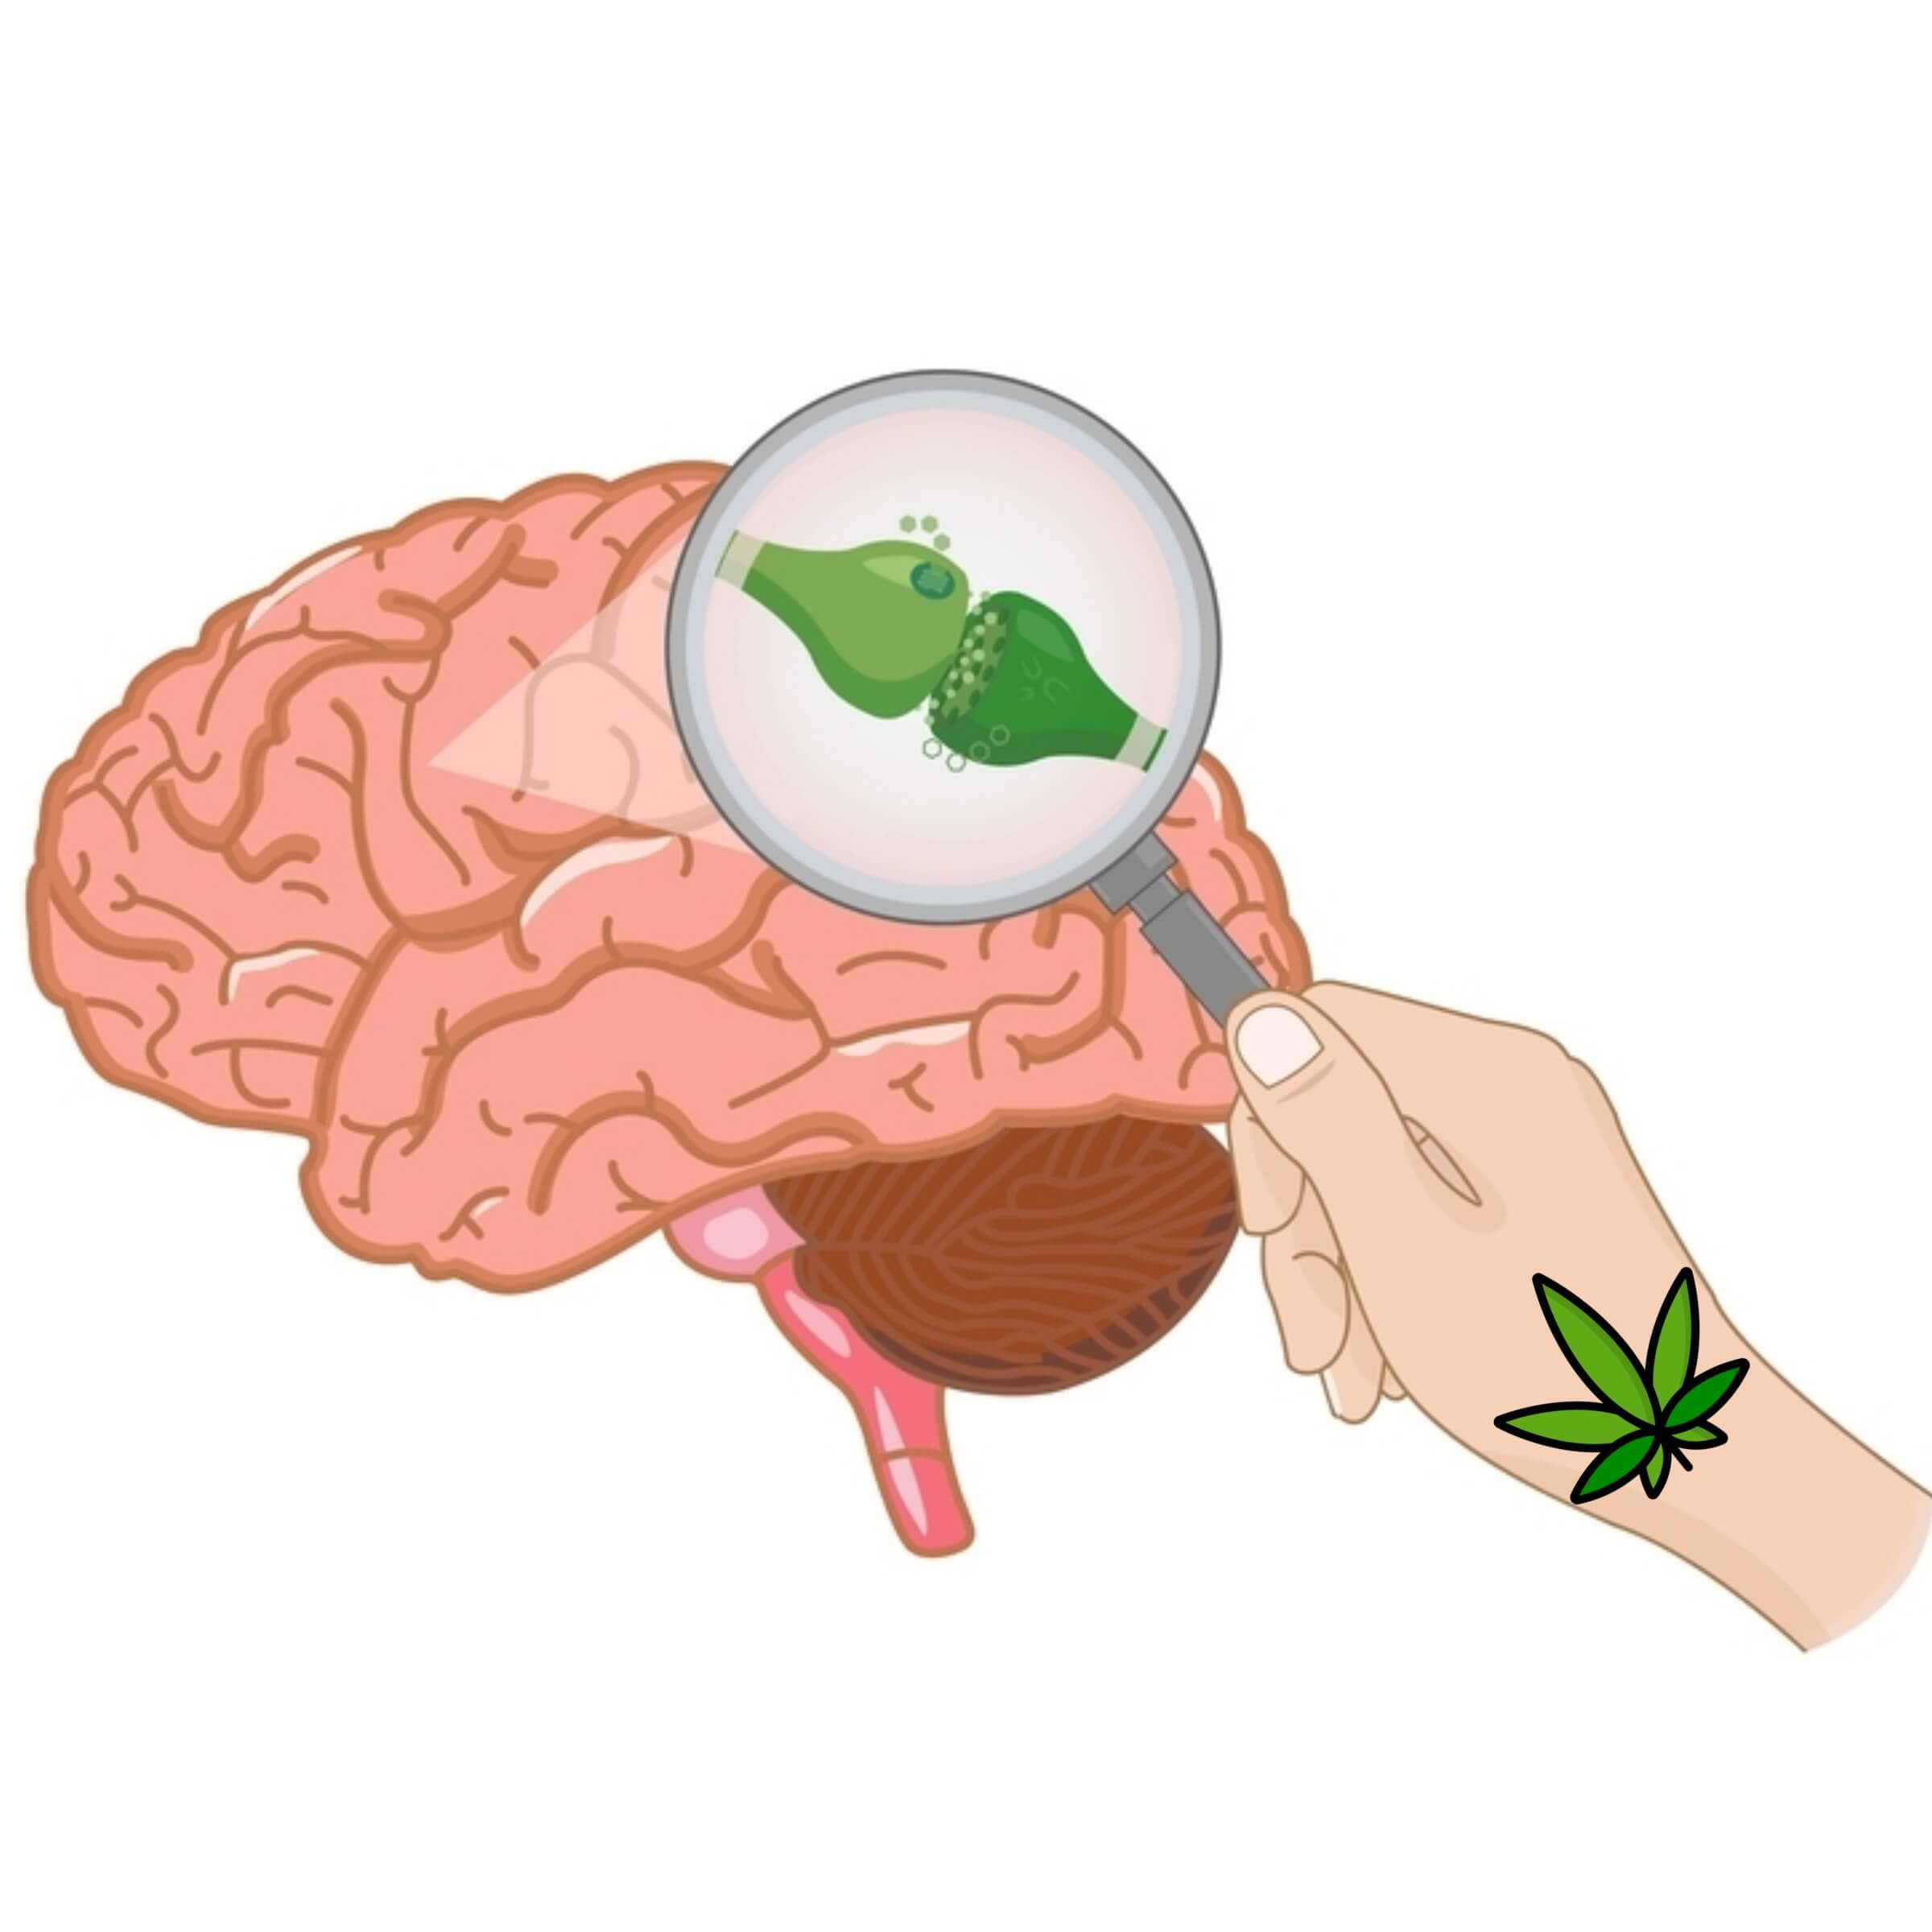 Effects of Cannabis: How It Affects Your Mind & Body